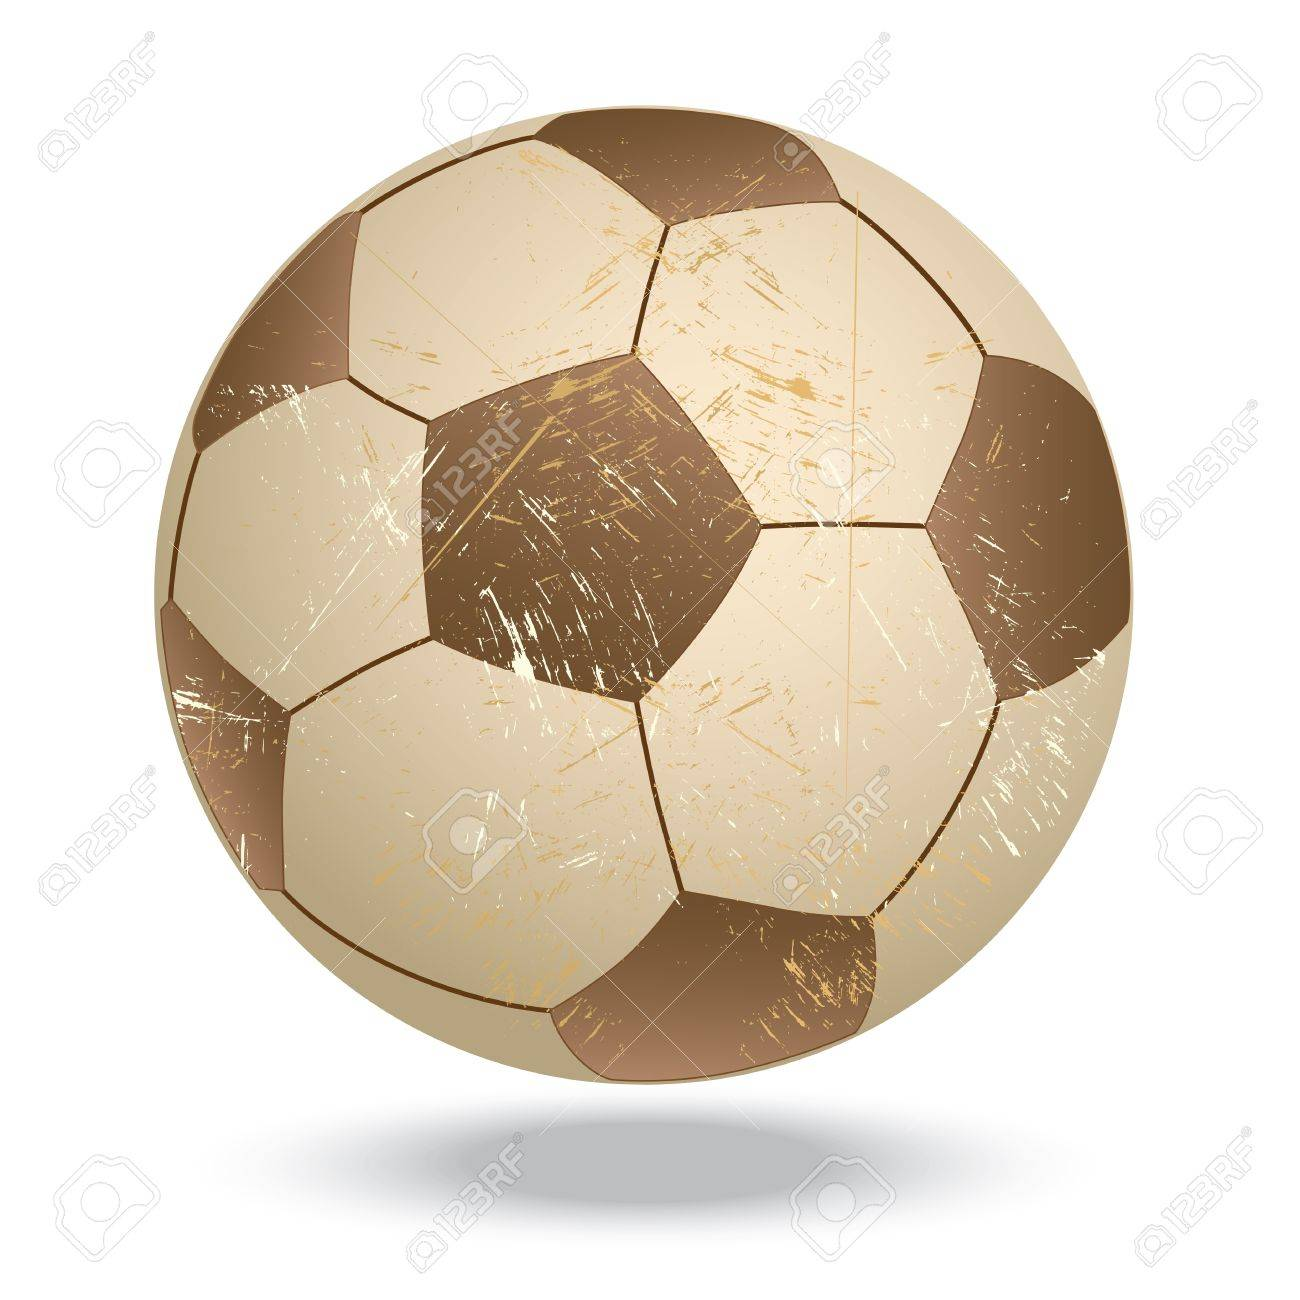 illustration of highly rendered vintage soccer ball, football, isolated in white background Stock Vector - 13626262